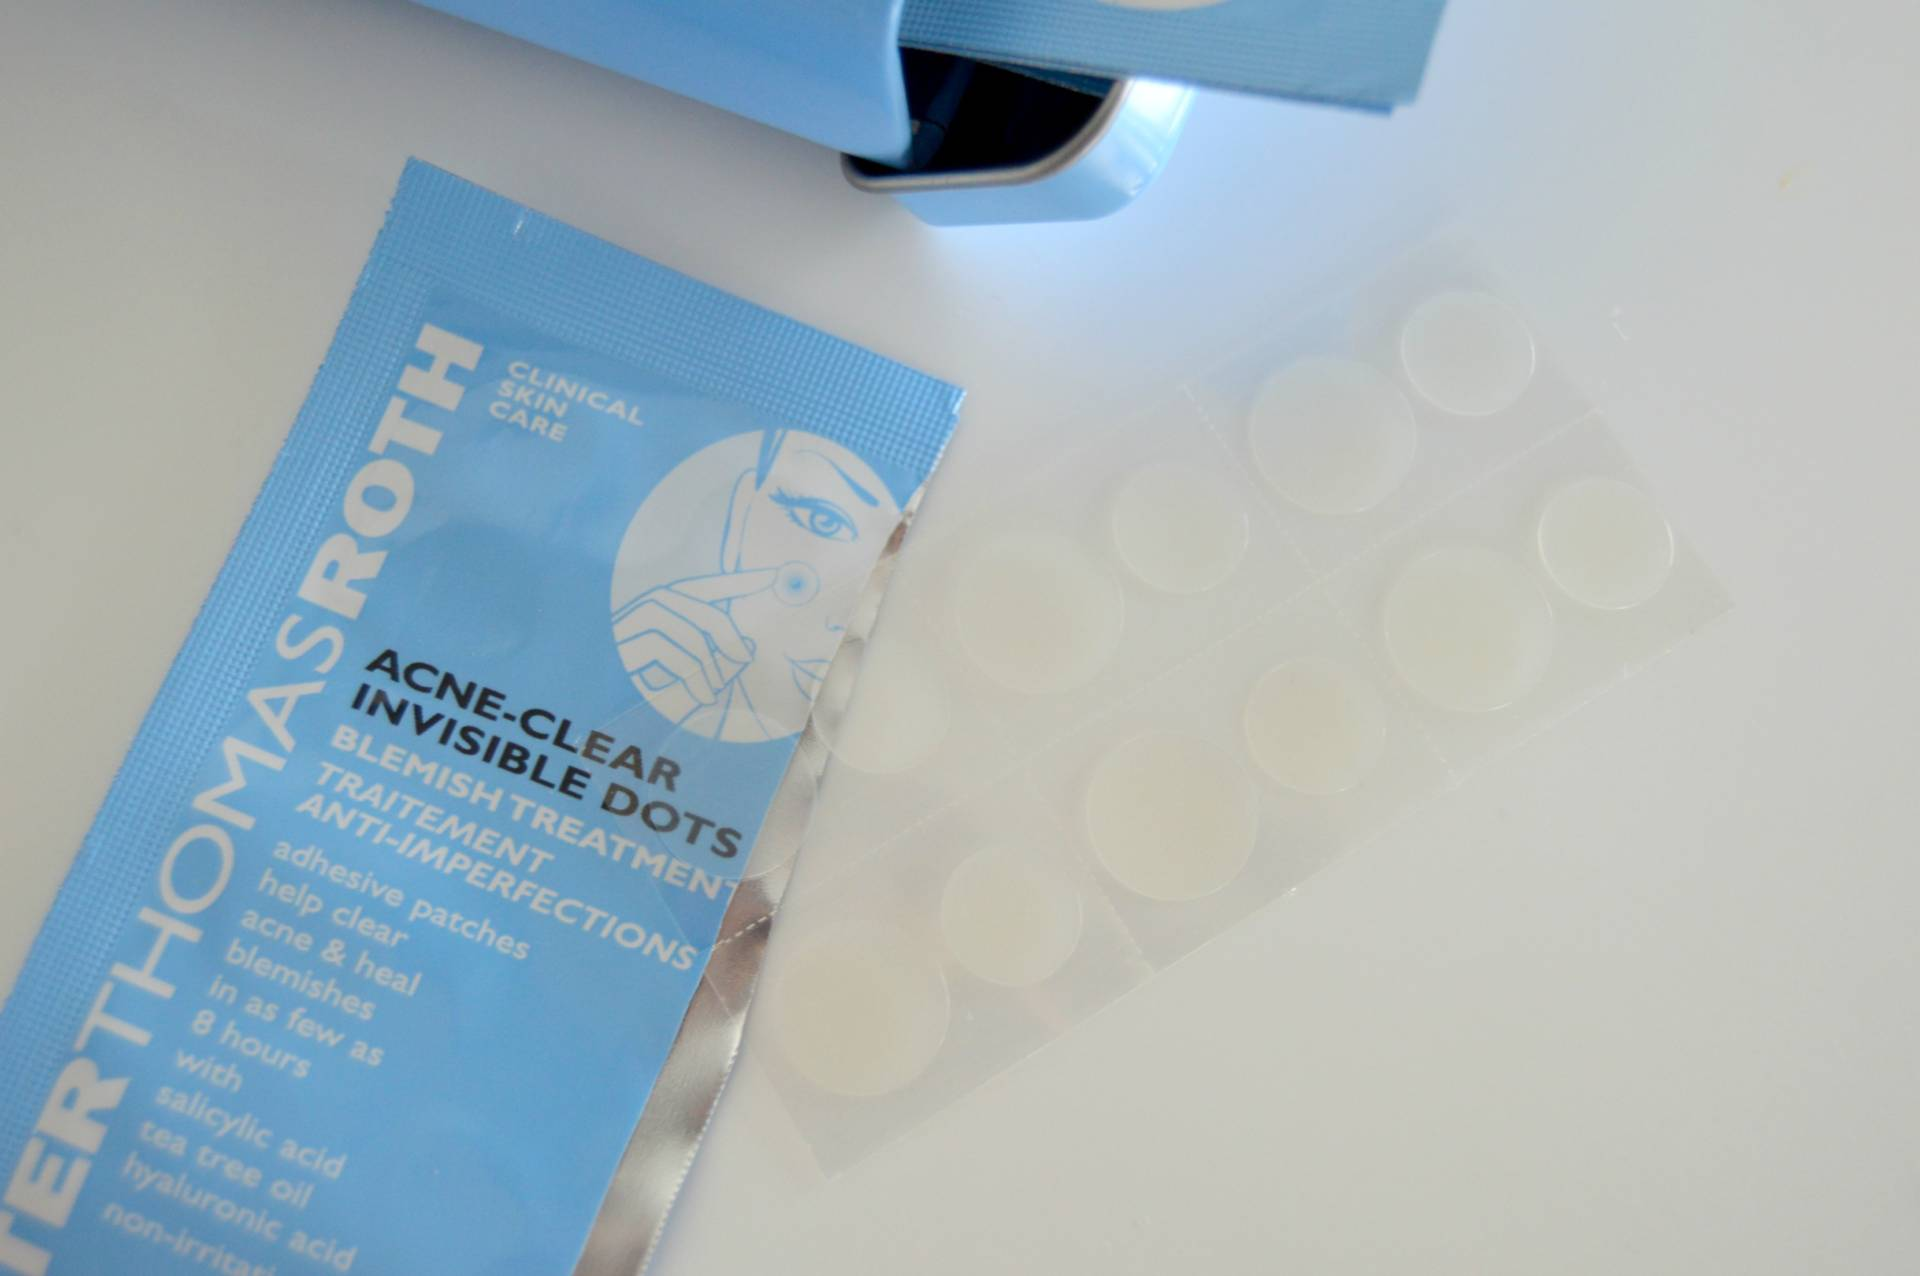 peter-thomas-rogth-acne-clear-invisible-dots-review-inhautepursuit